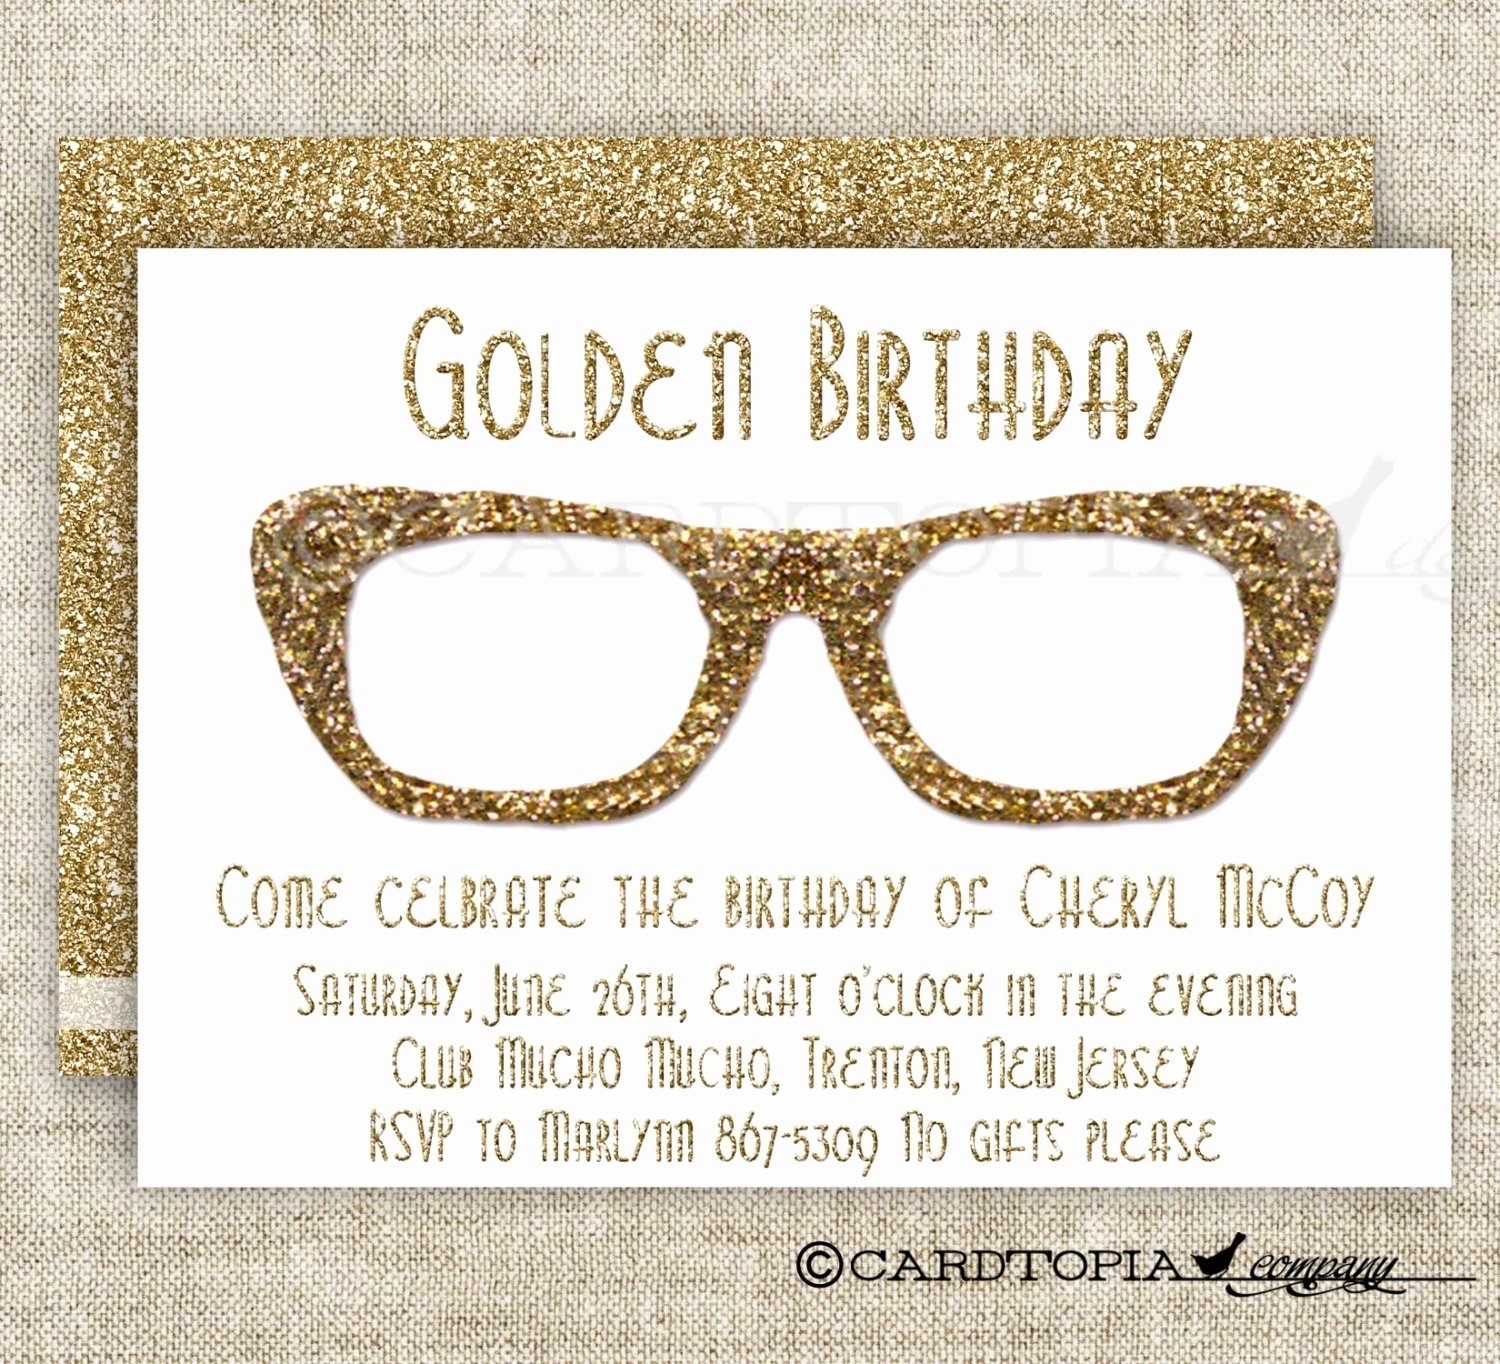 10 Fabulous Golden Birthday Ideas For Adults golden birthday card fresh hipster birthday party invitations for